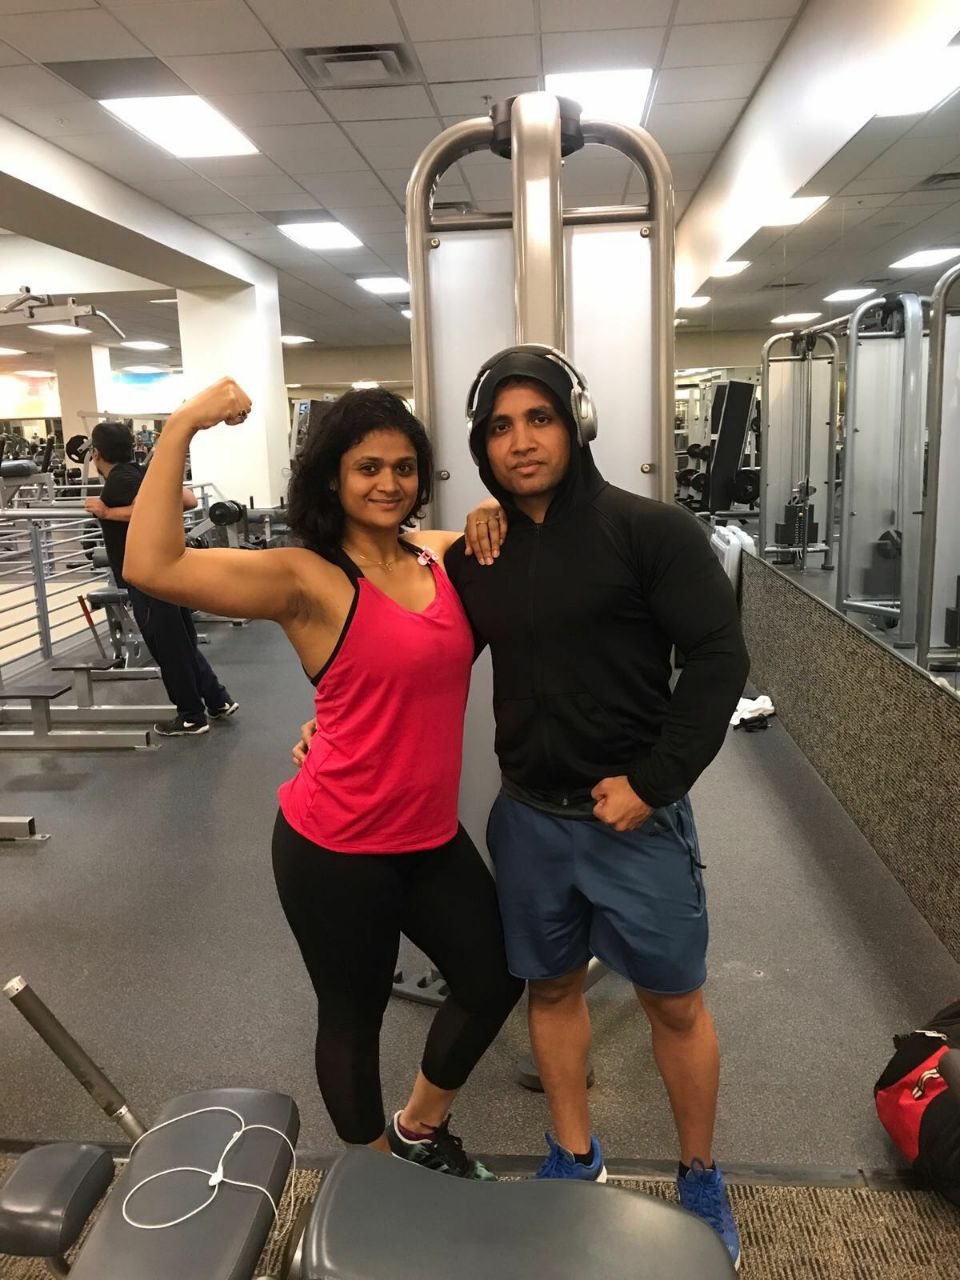 Couple's fitness - problems enroute